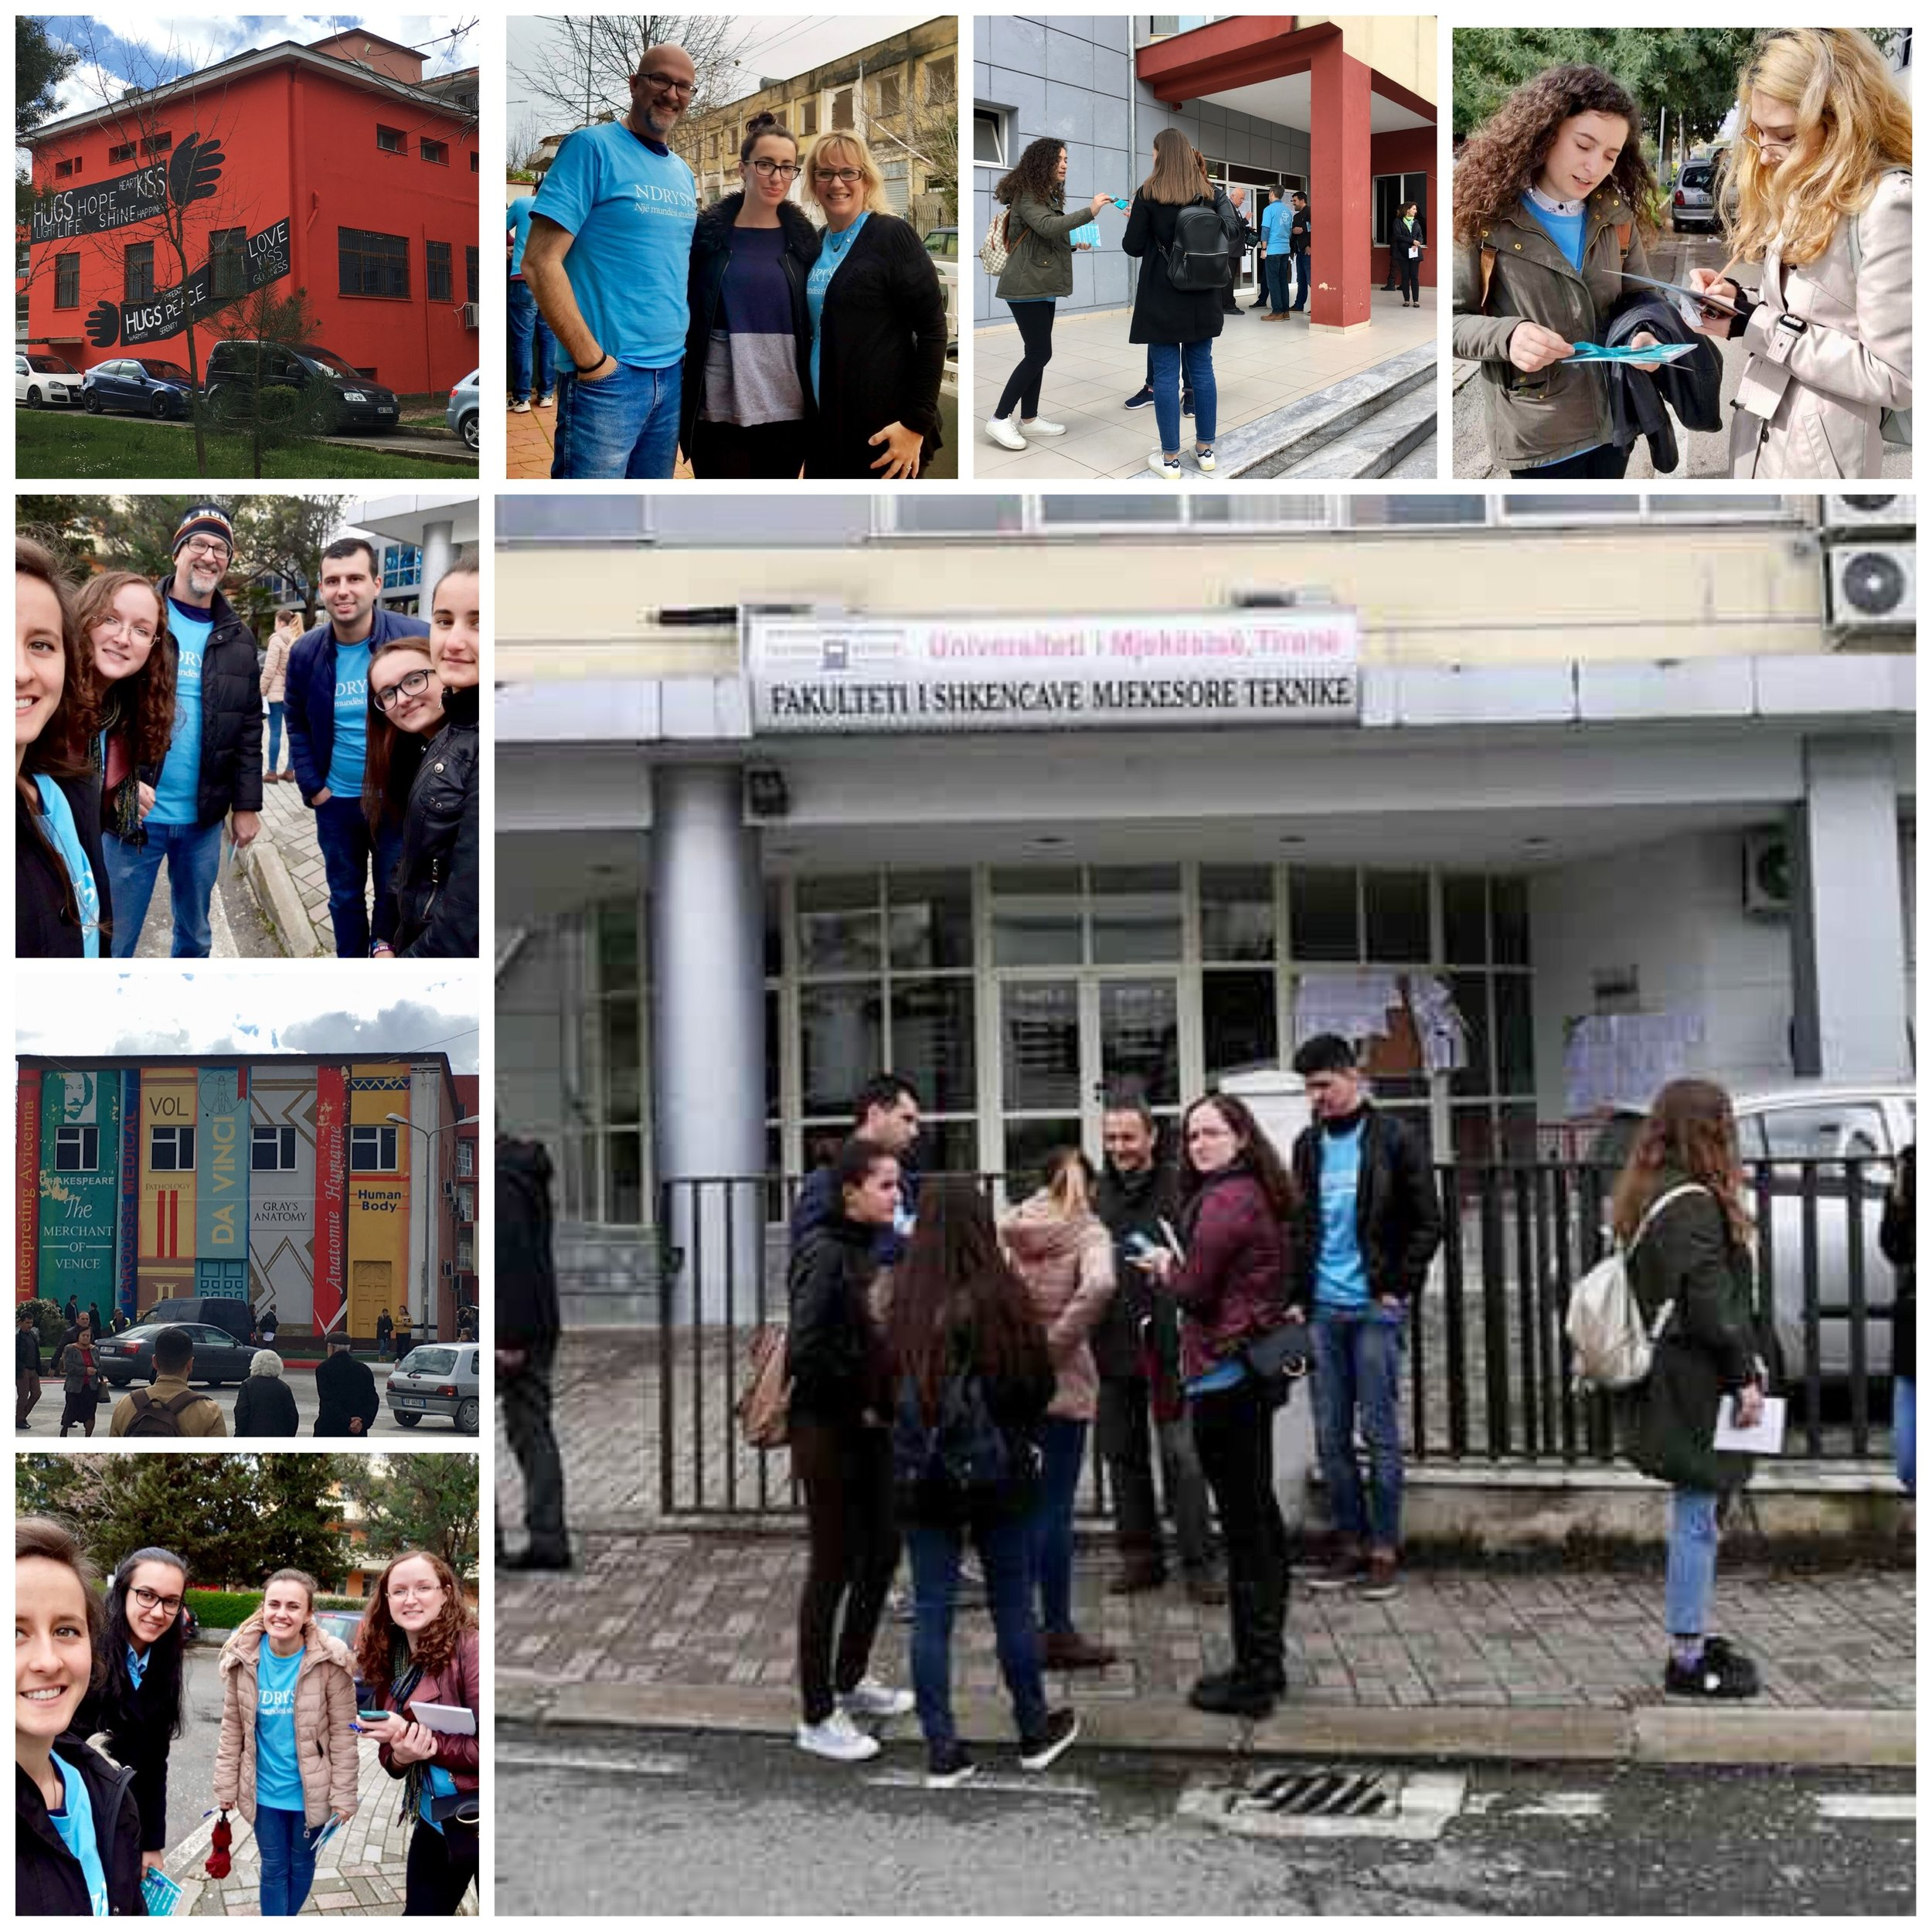 The medical university was our destination on Tuesday morning.